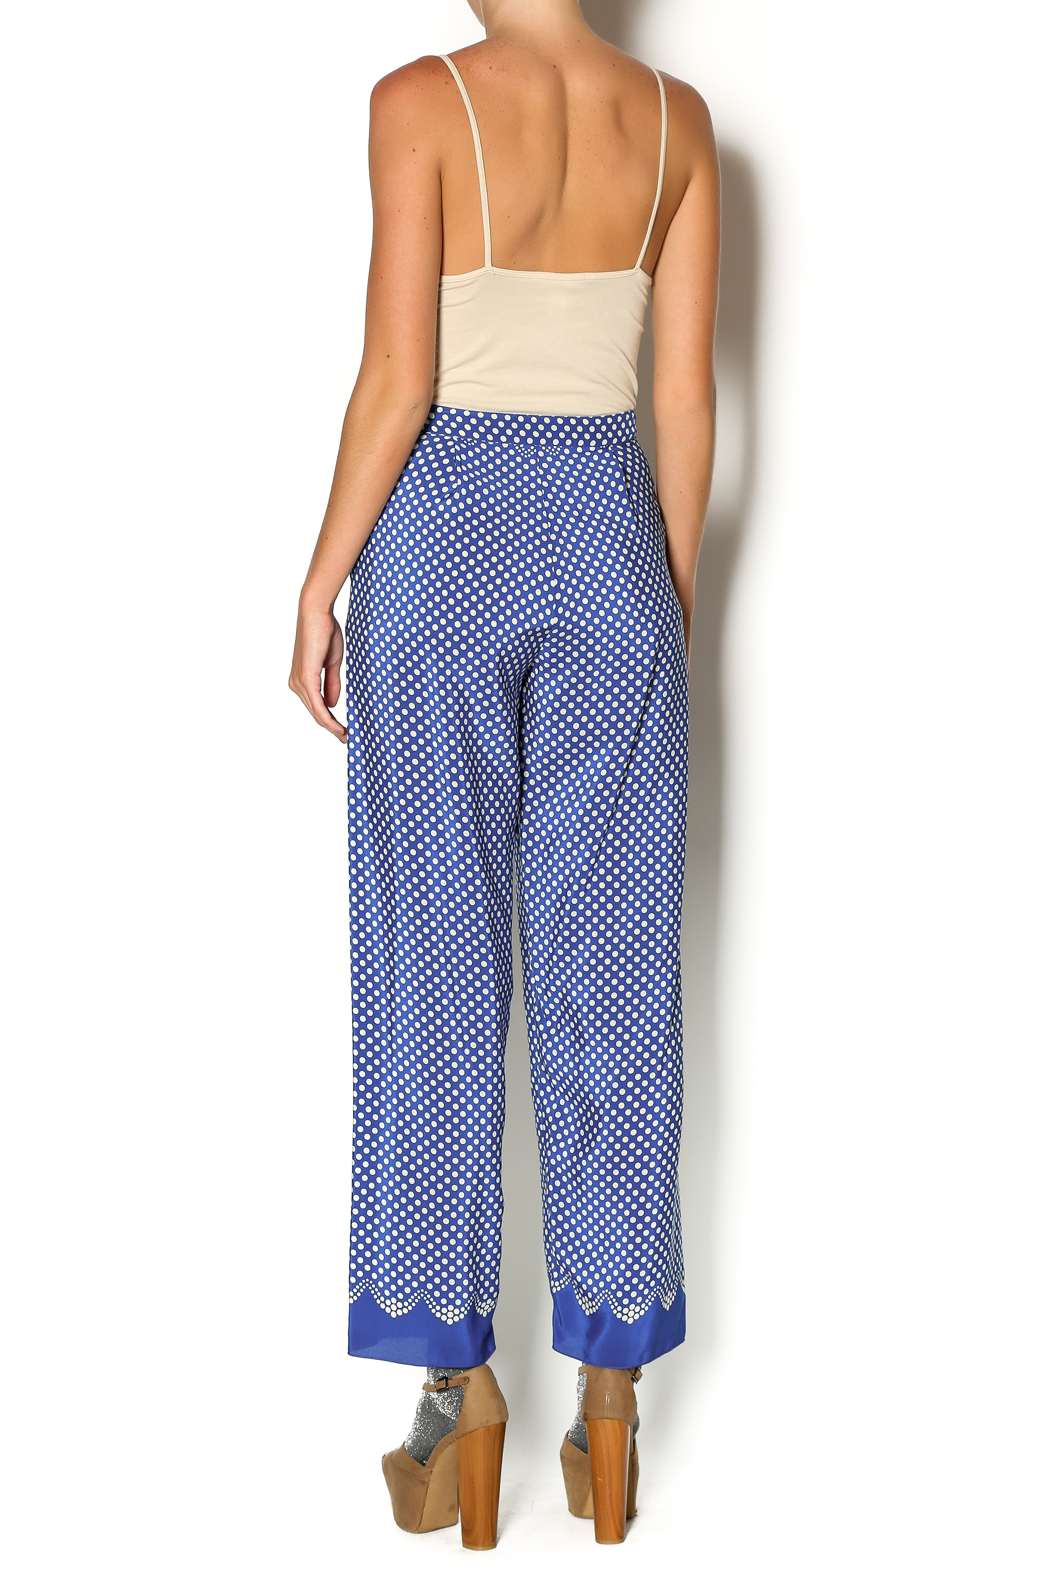 Anna Sui Aurora Polka Dot Pant - Side Cropped Image